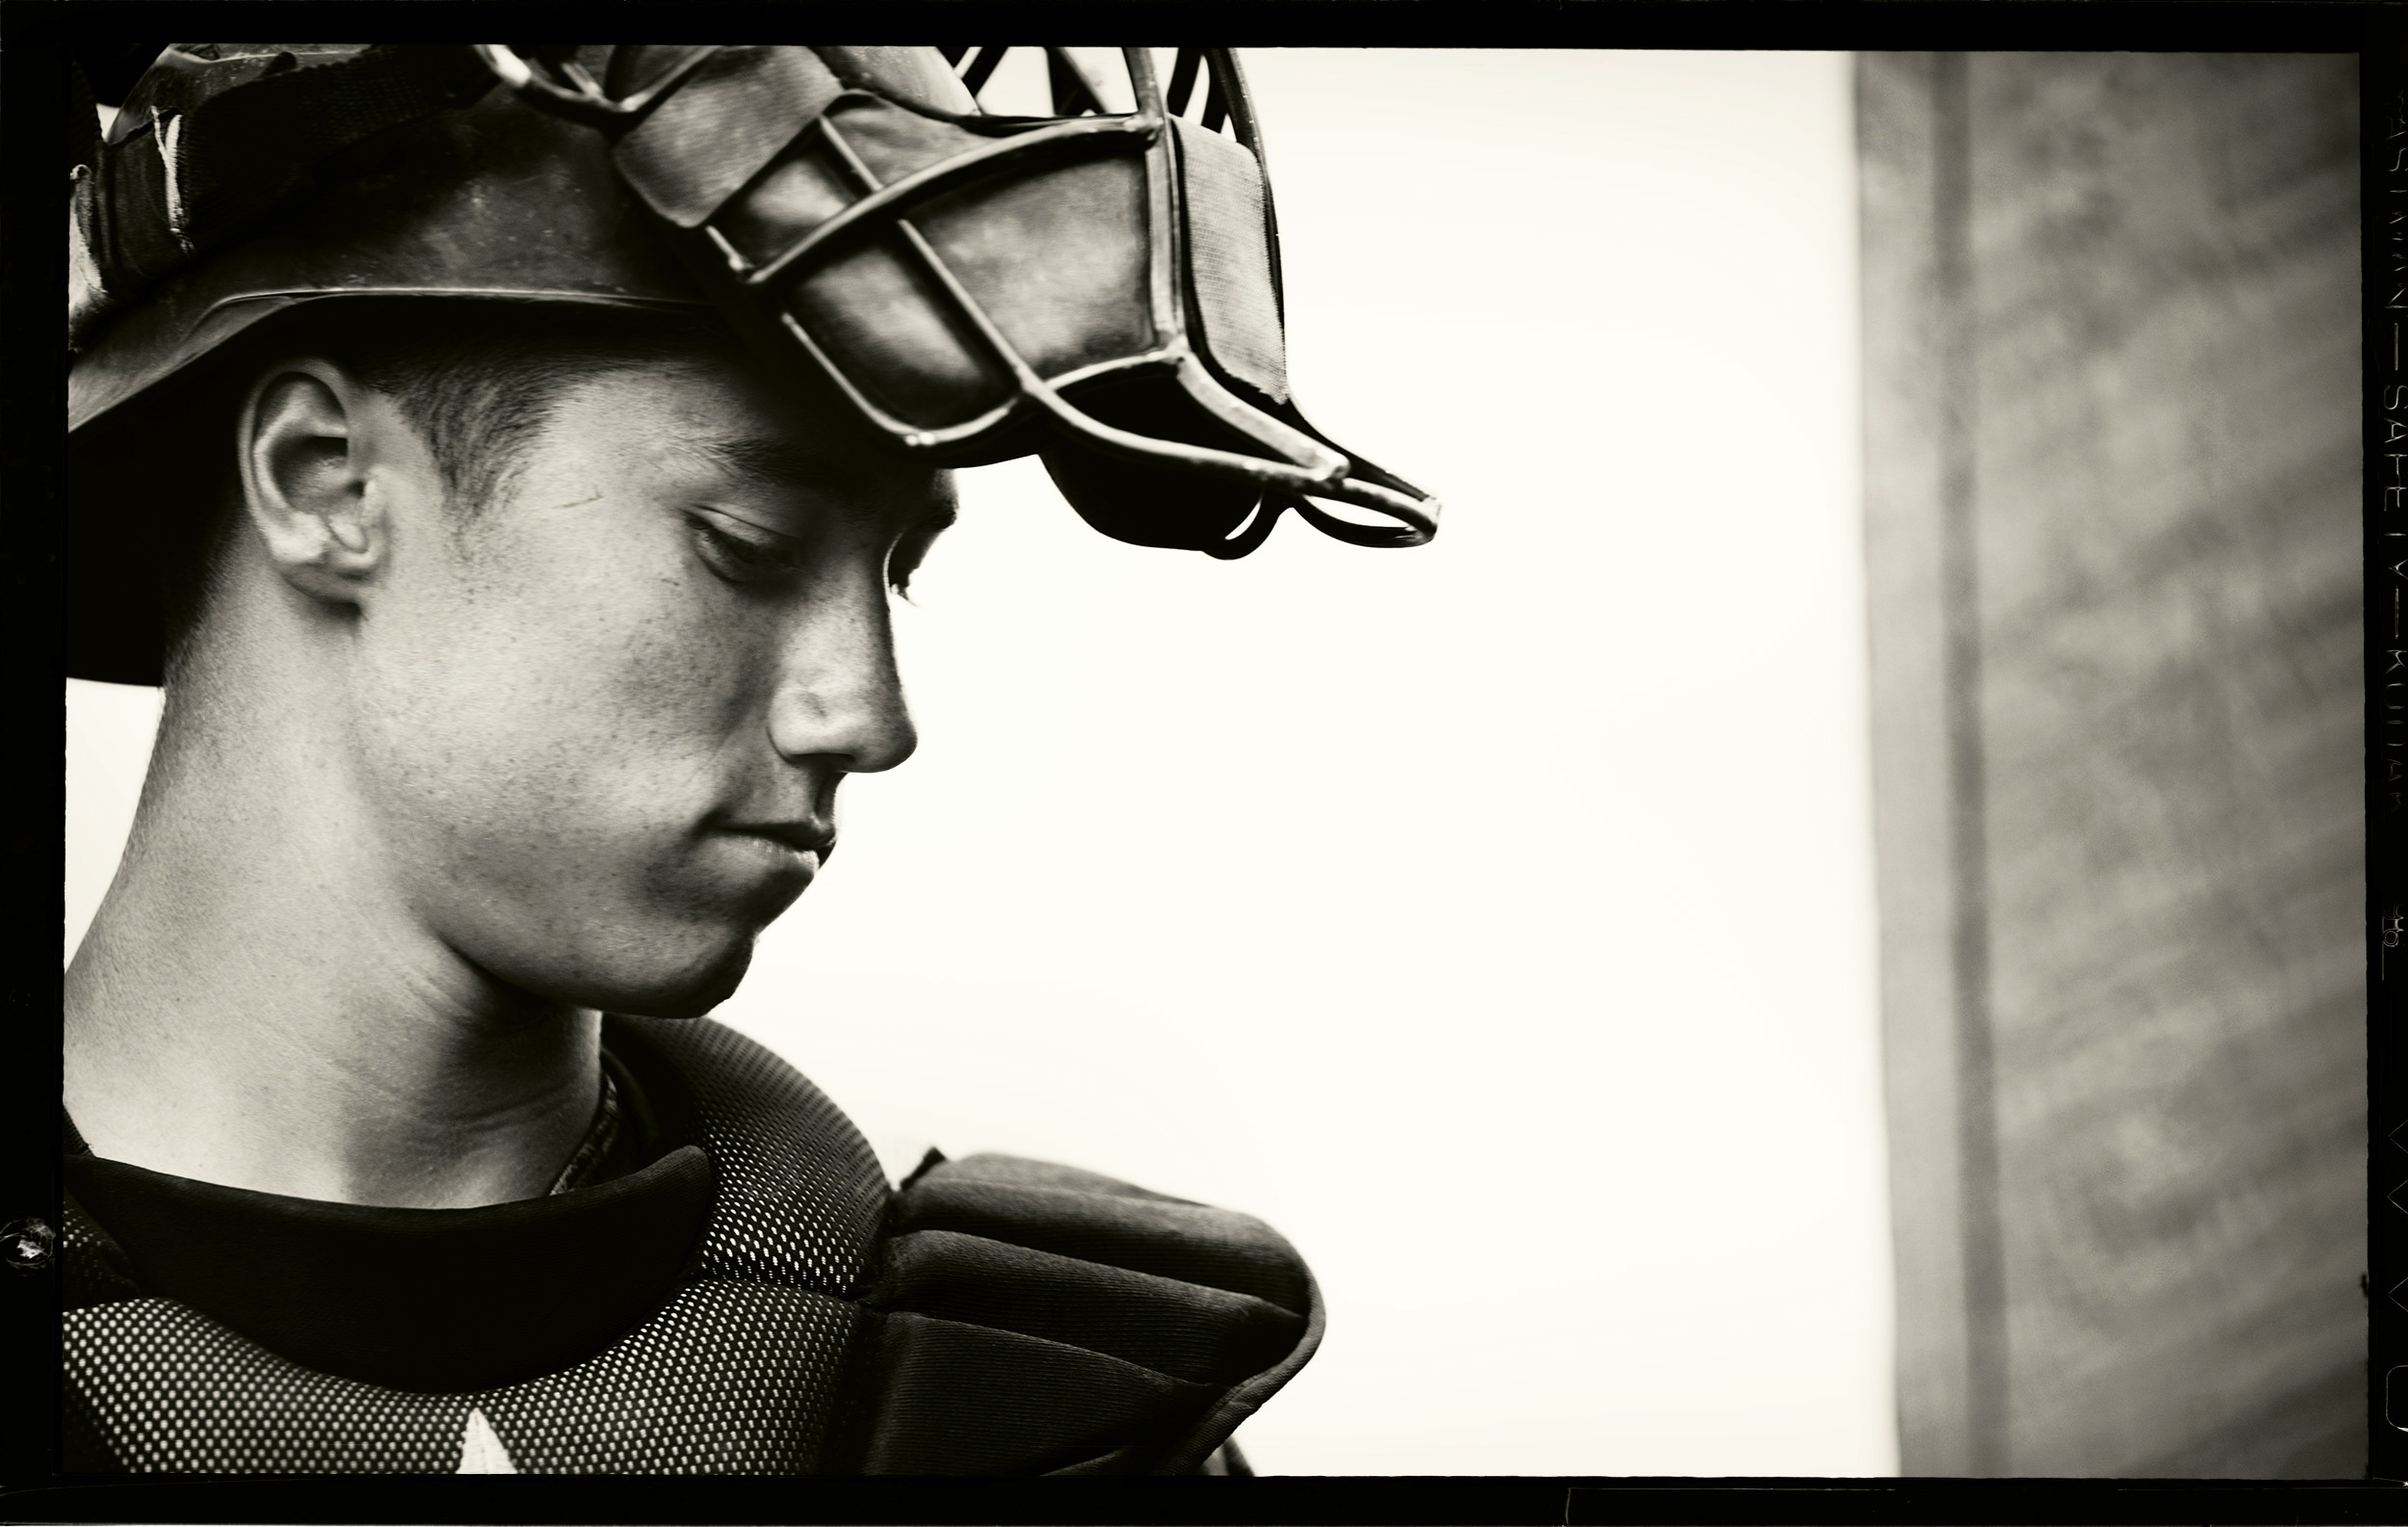 Black and white image of a teenage baseball player wearing his catchers gear